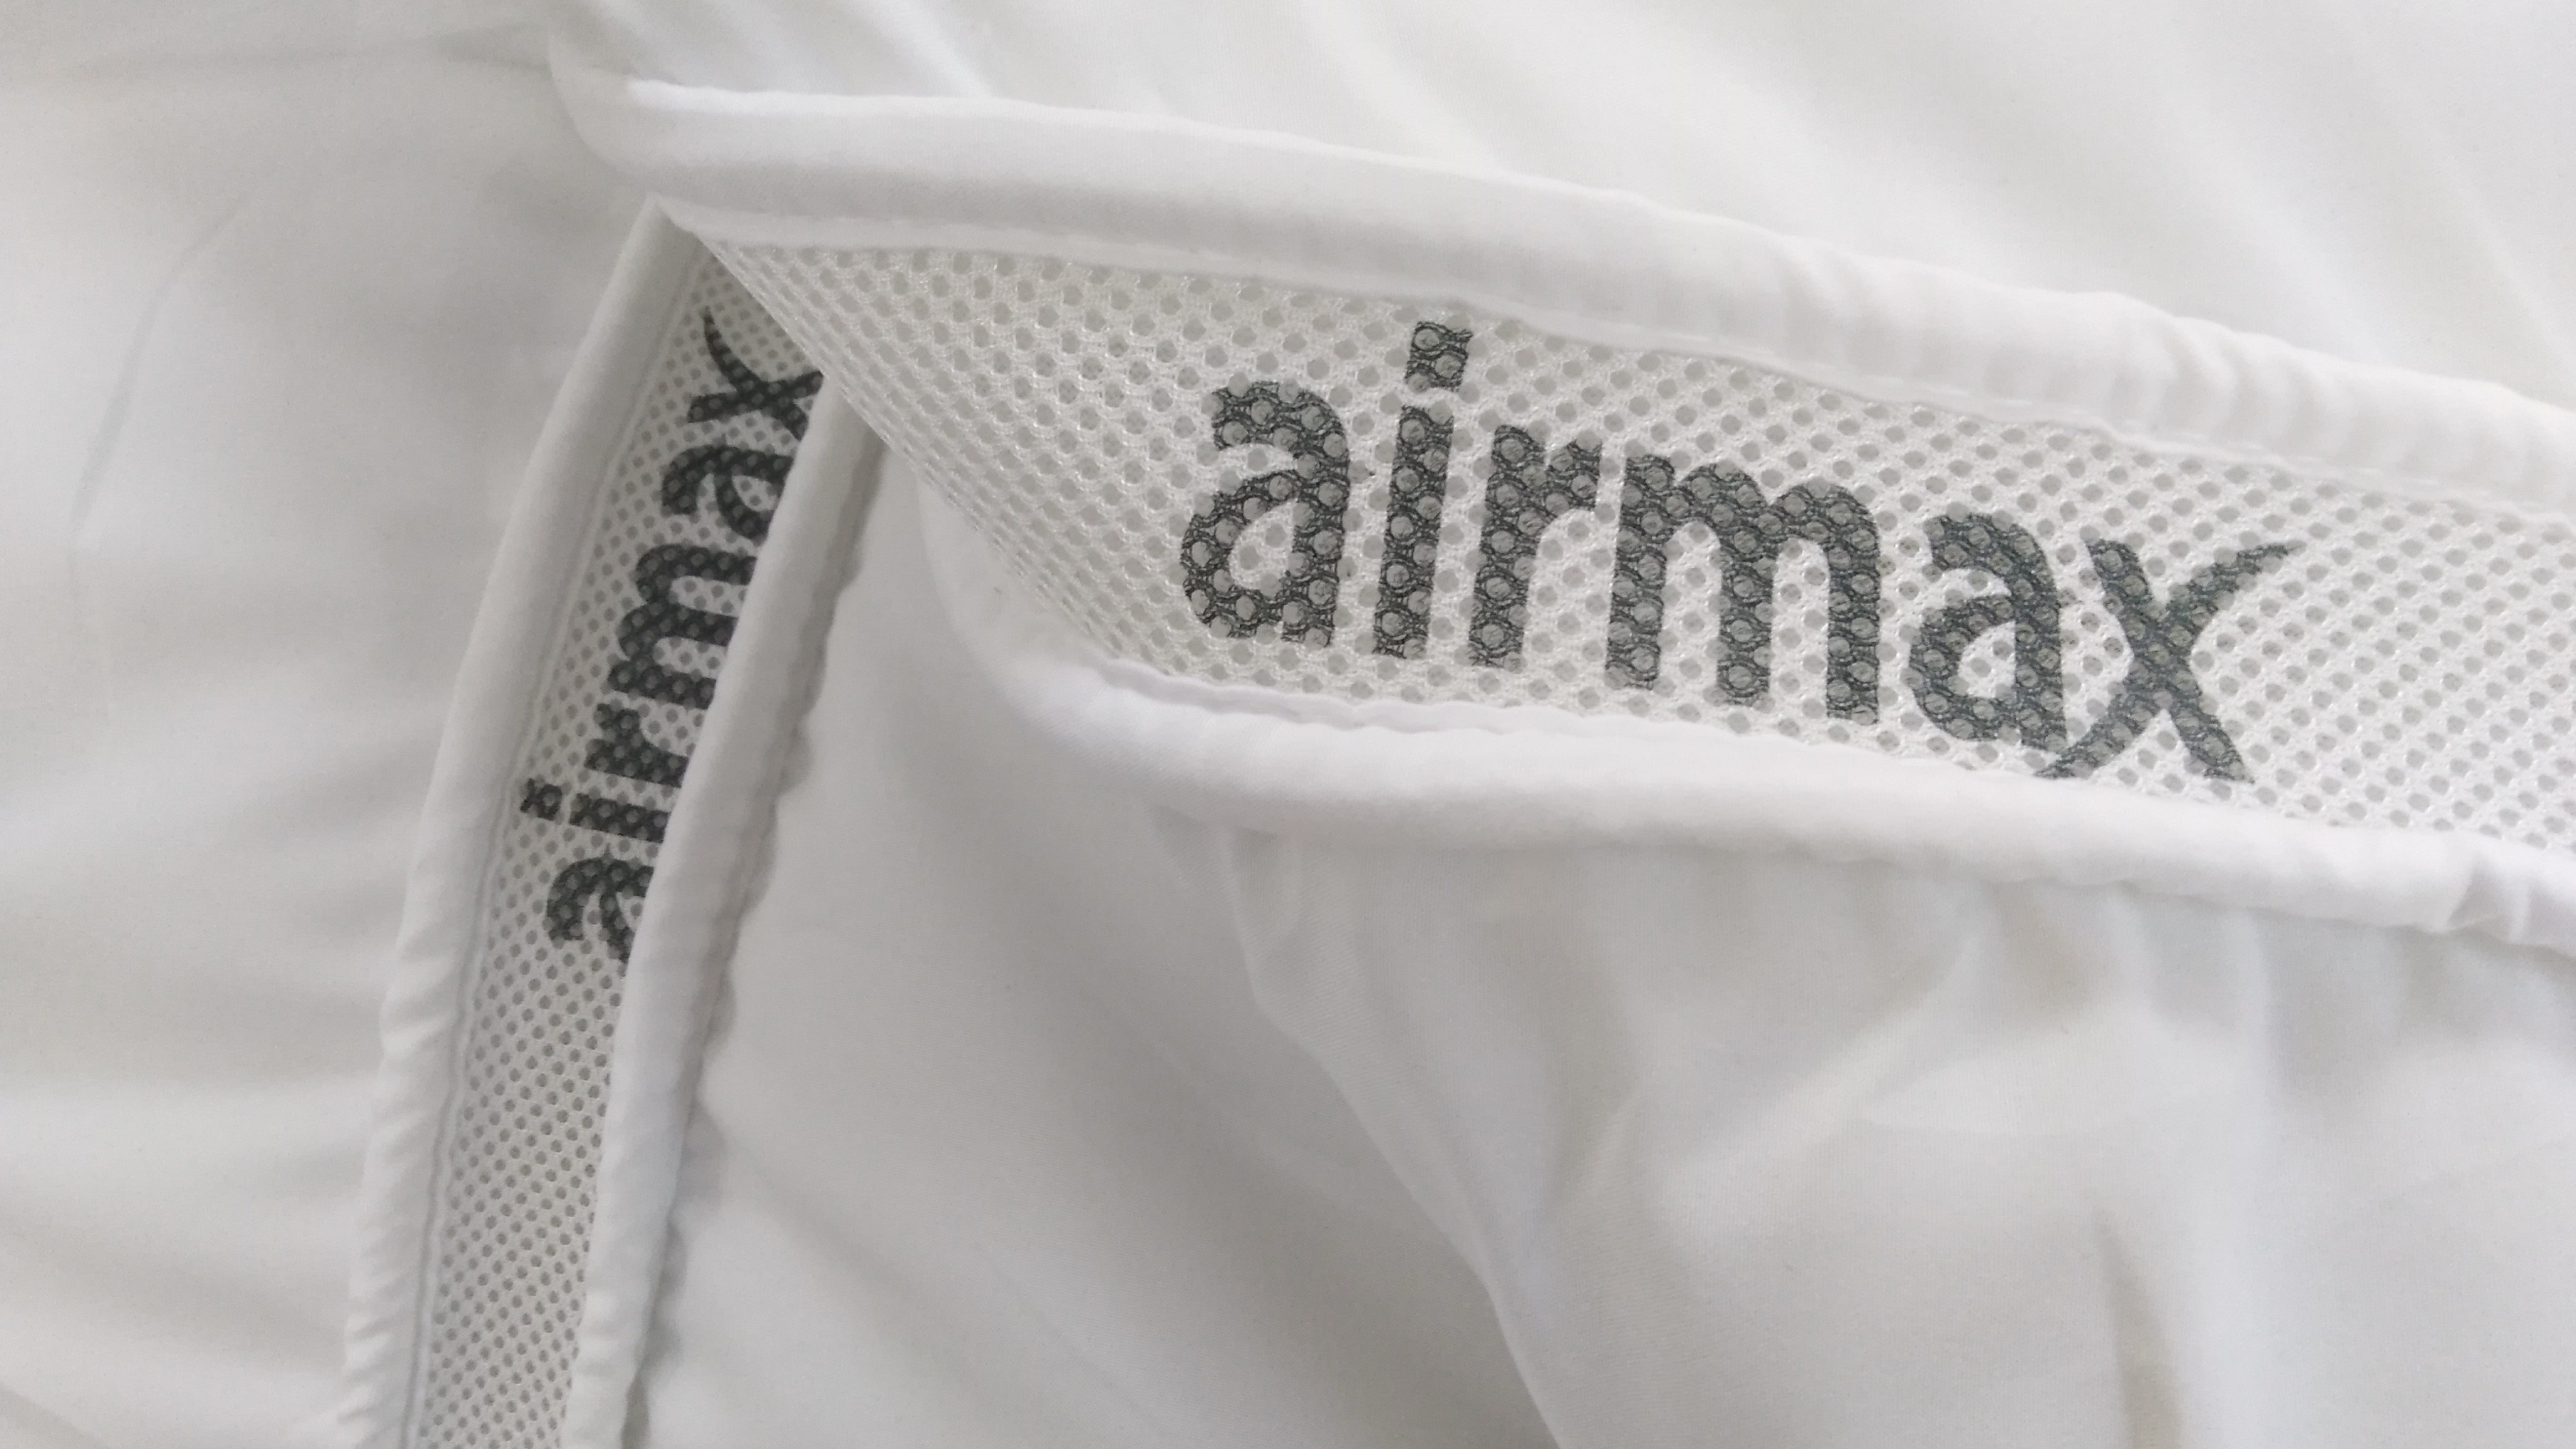 Silentnight Airmax duvet review: This surprise hit takes airflow to the ...